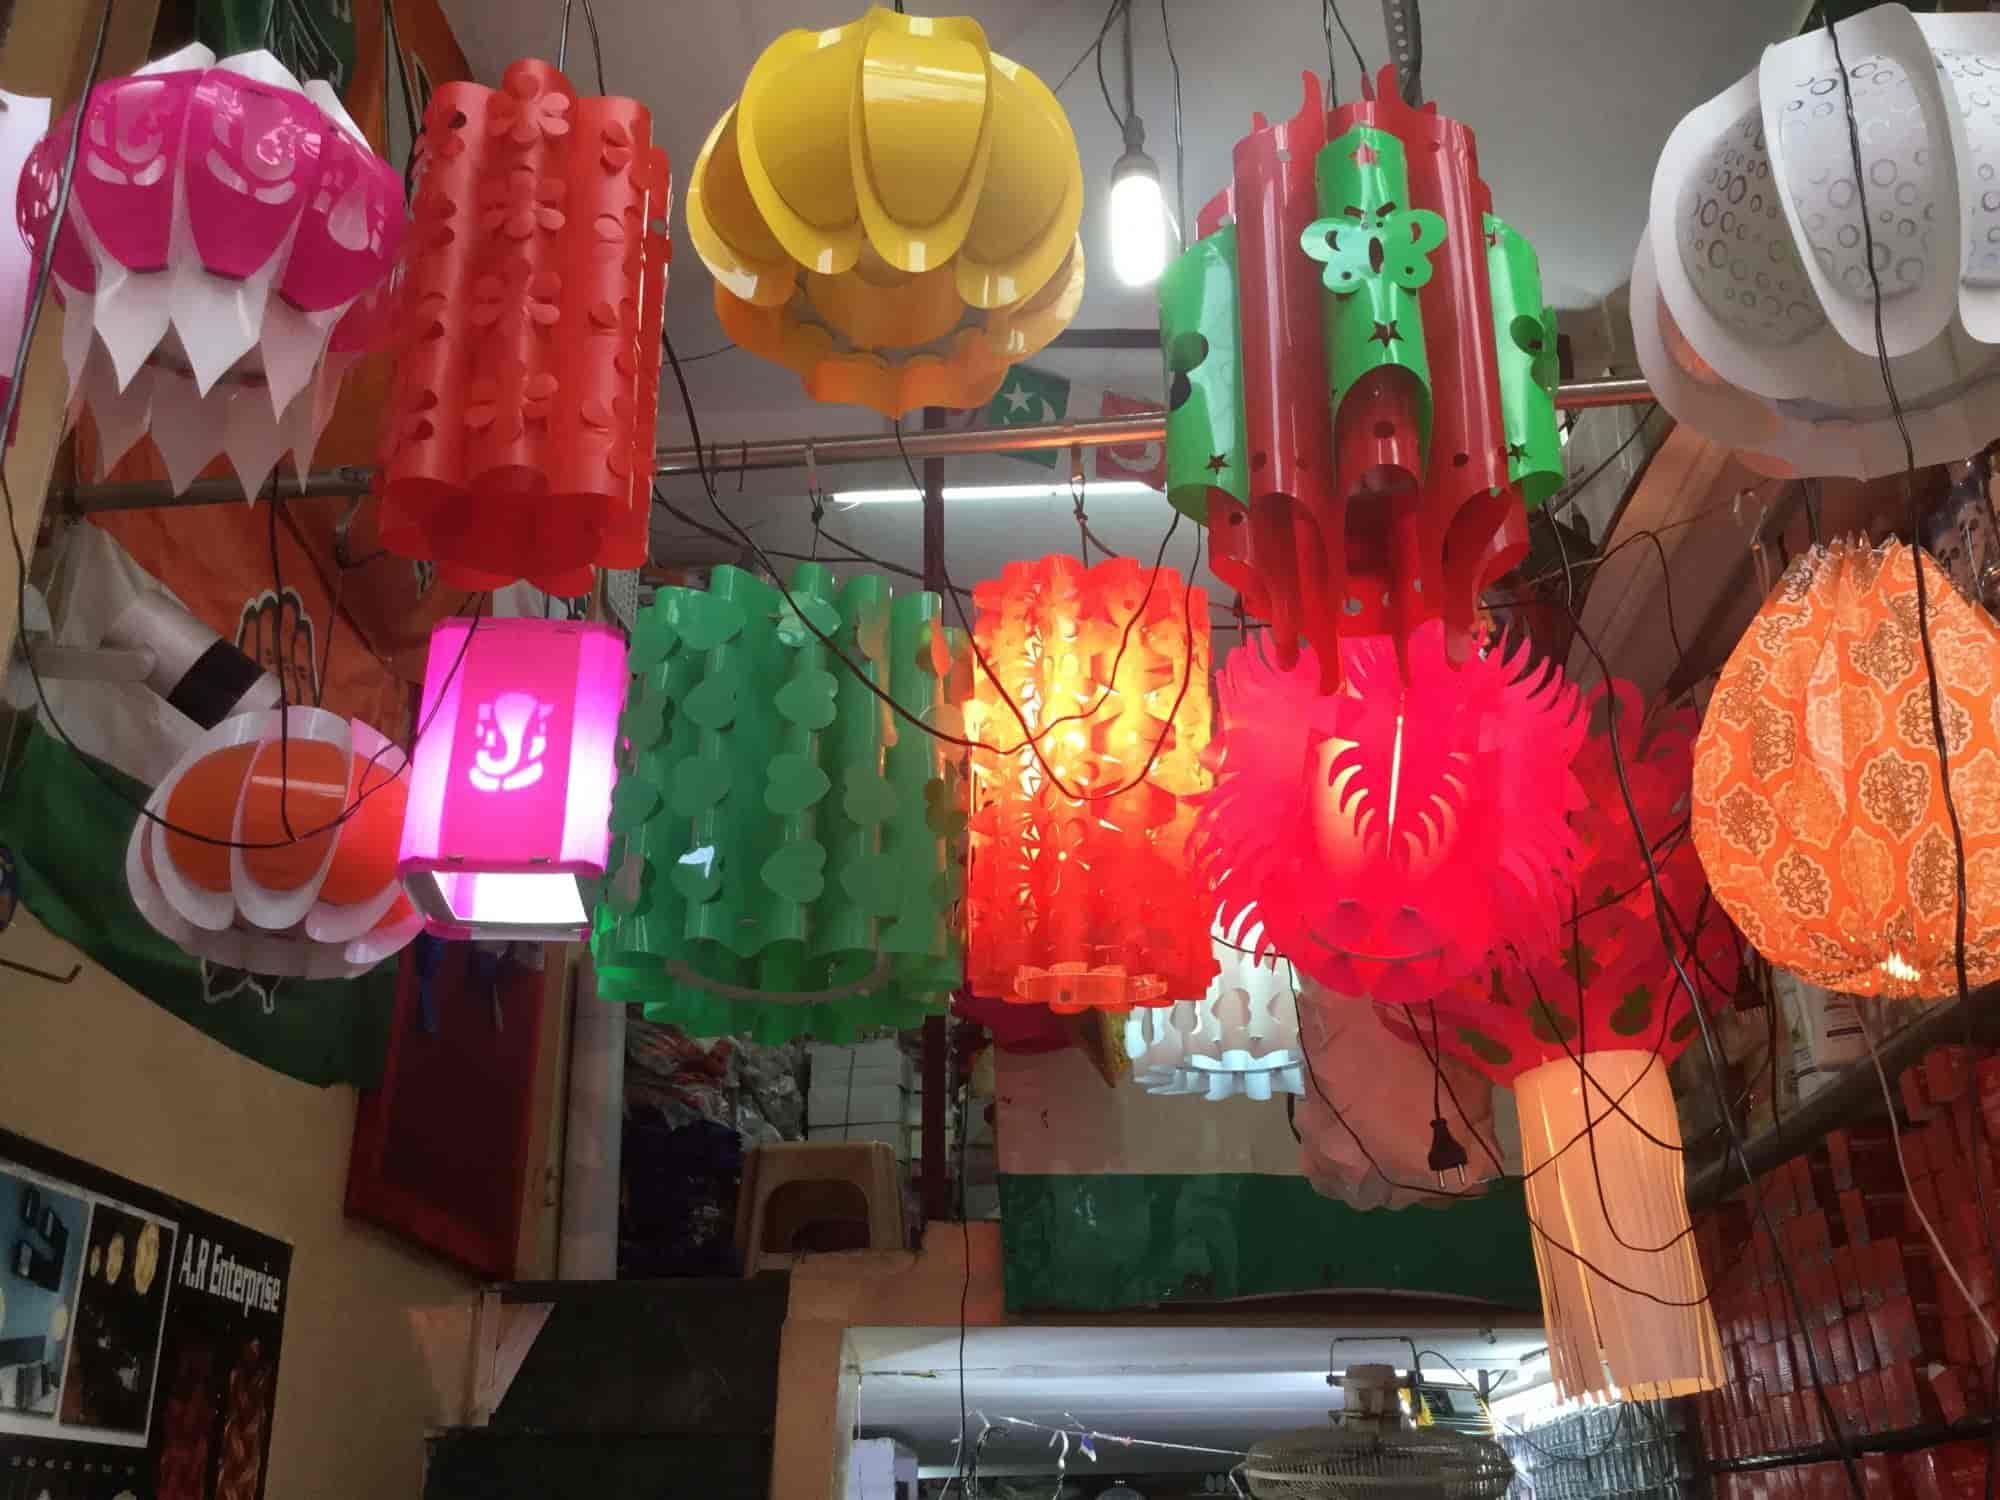 Lamps A R Cosmetic Decoration Lamps Photos Sadar Bazar Delhi Cosmetic Wholesalers